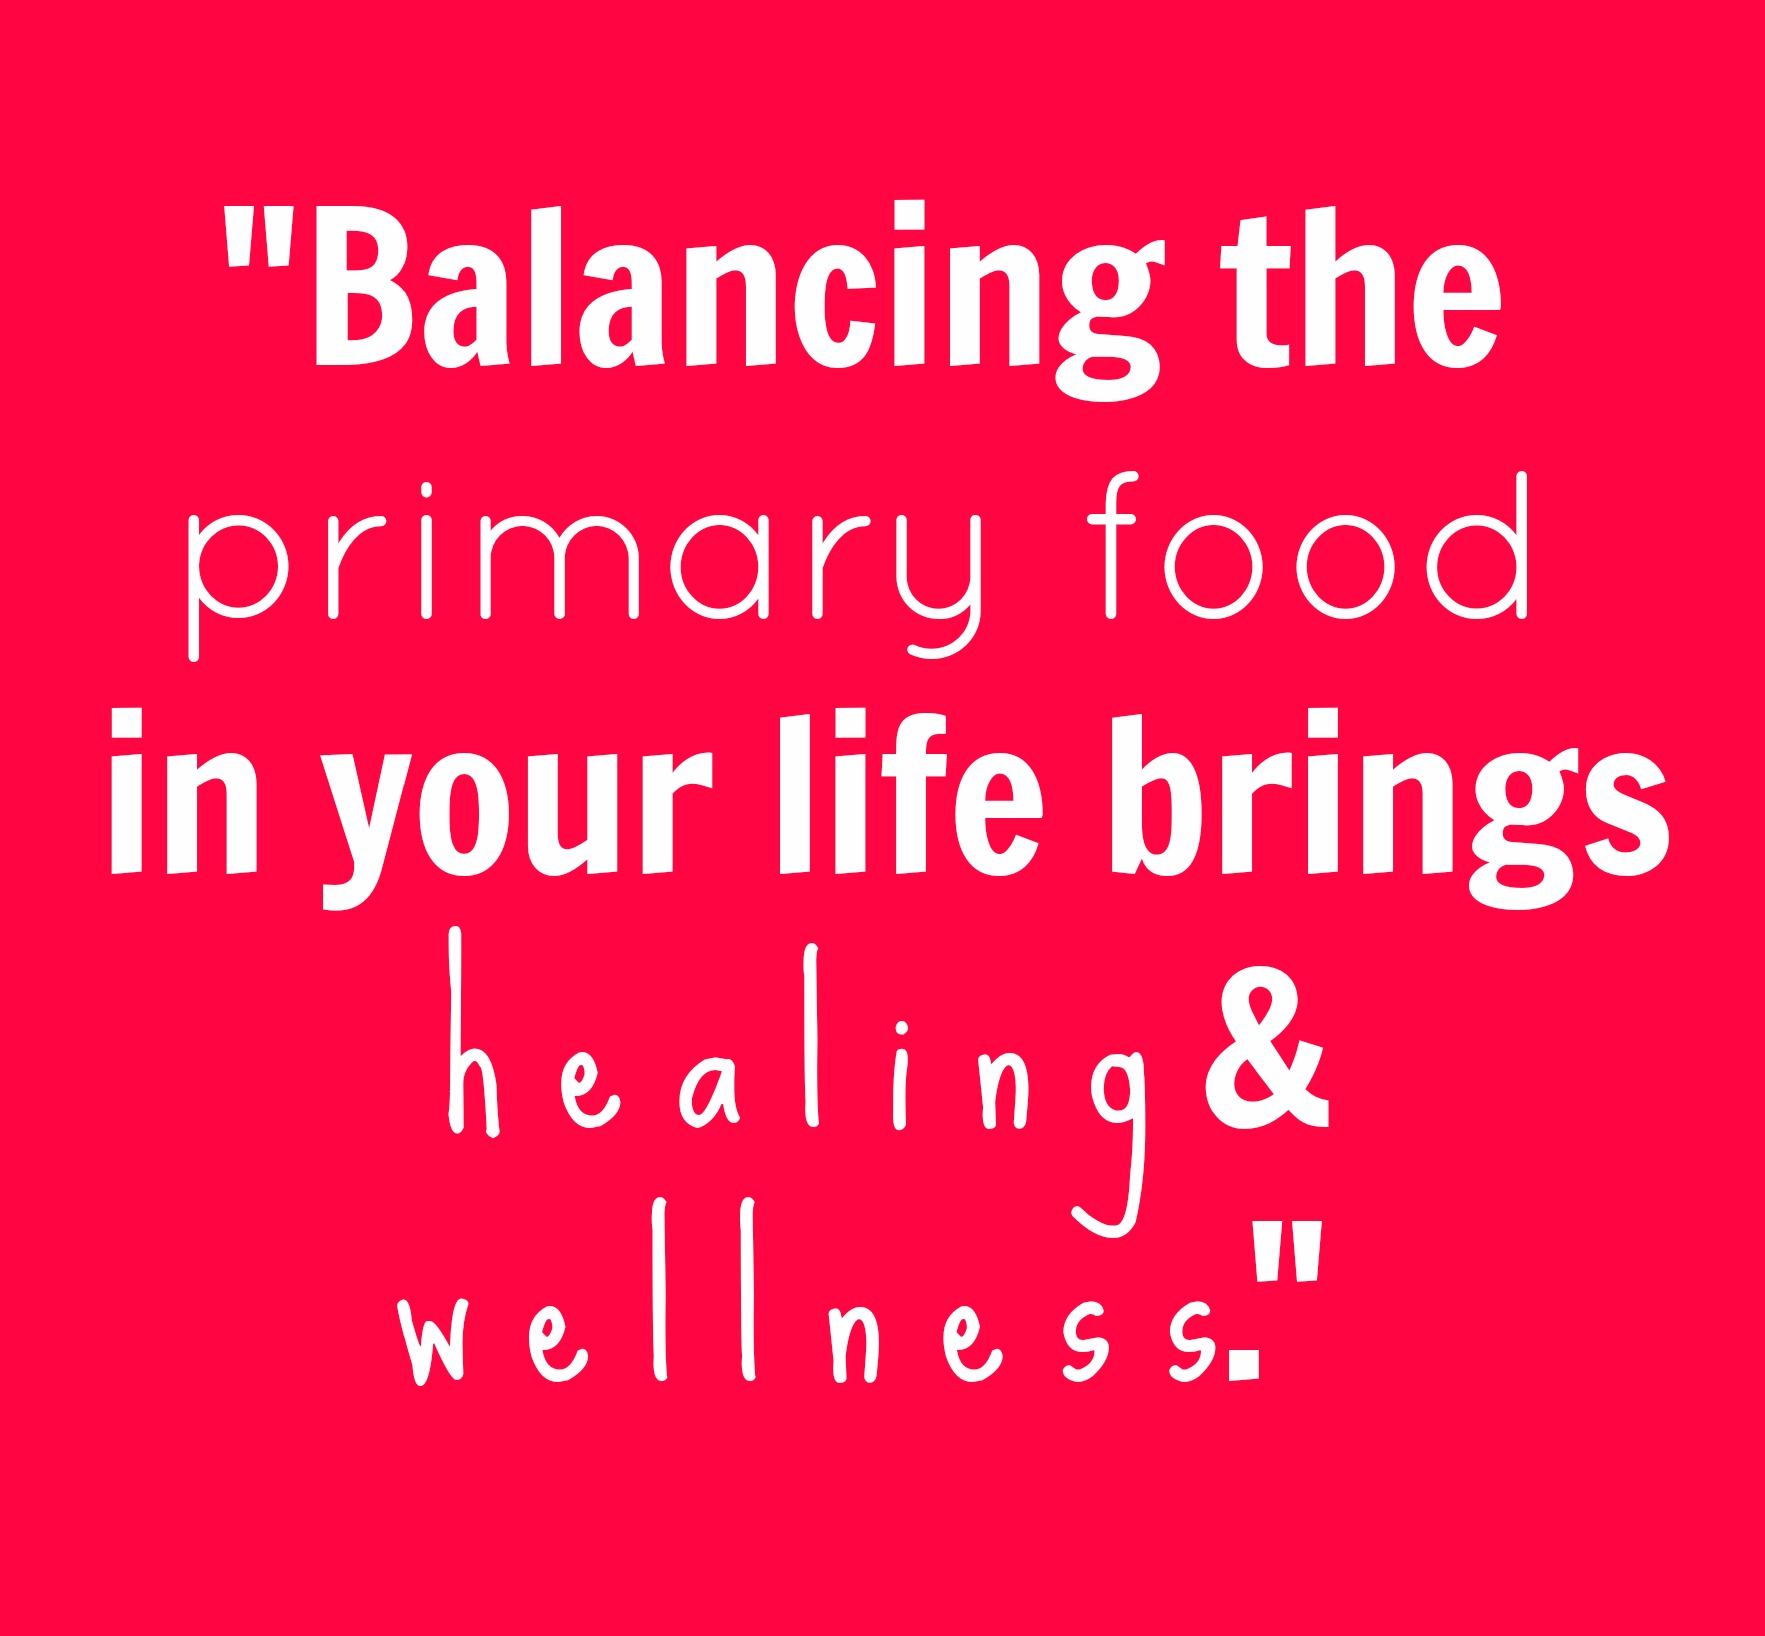 Wellness Quotes Awesome Iin Chat Health & Wellness Quotes I Love  Foodie Loves Fitness